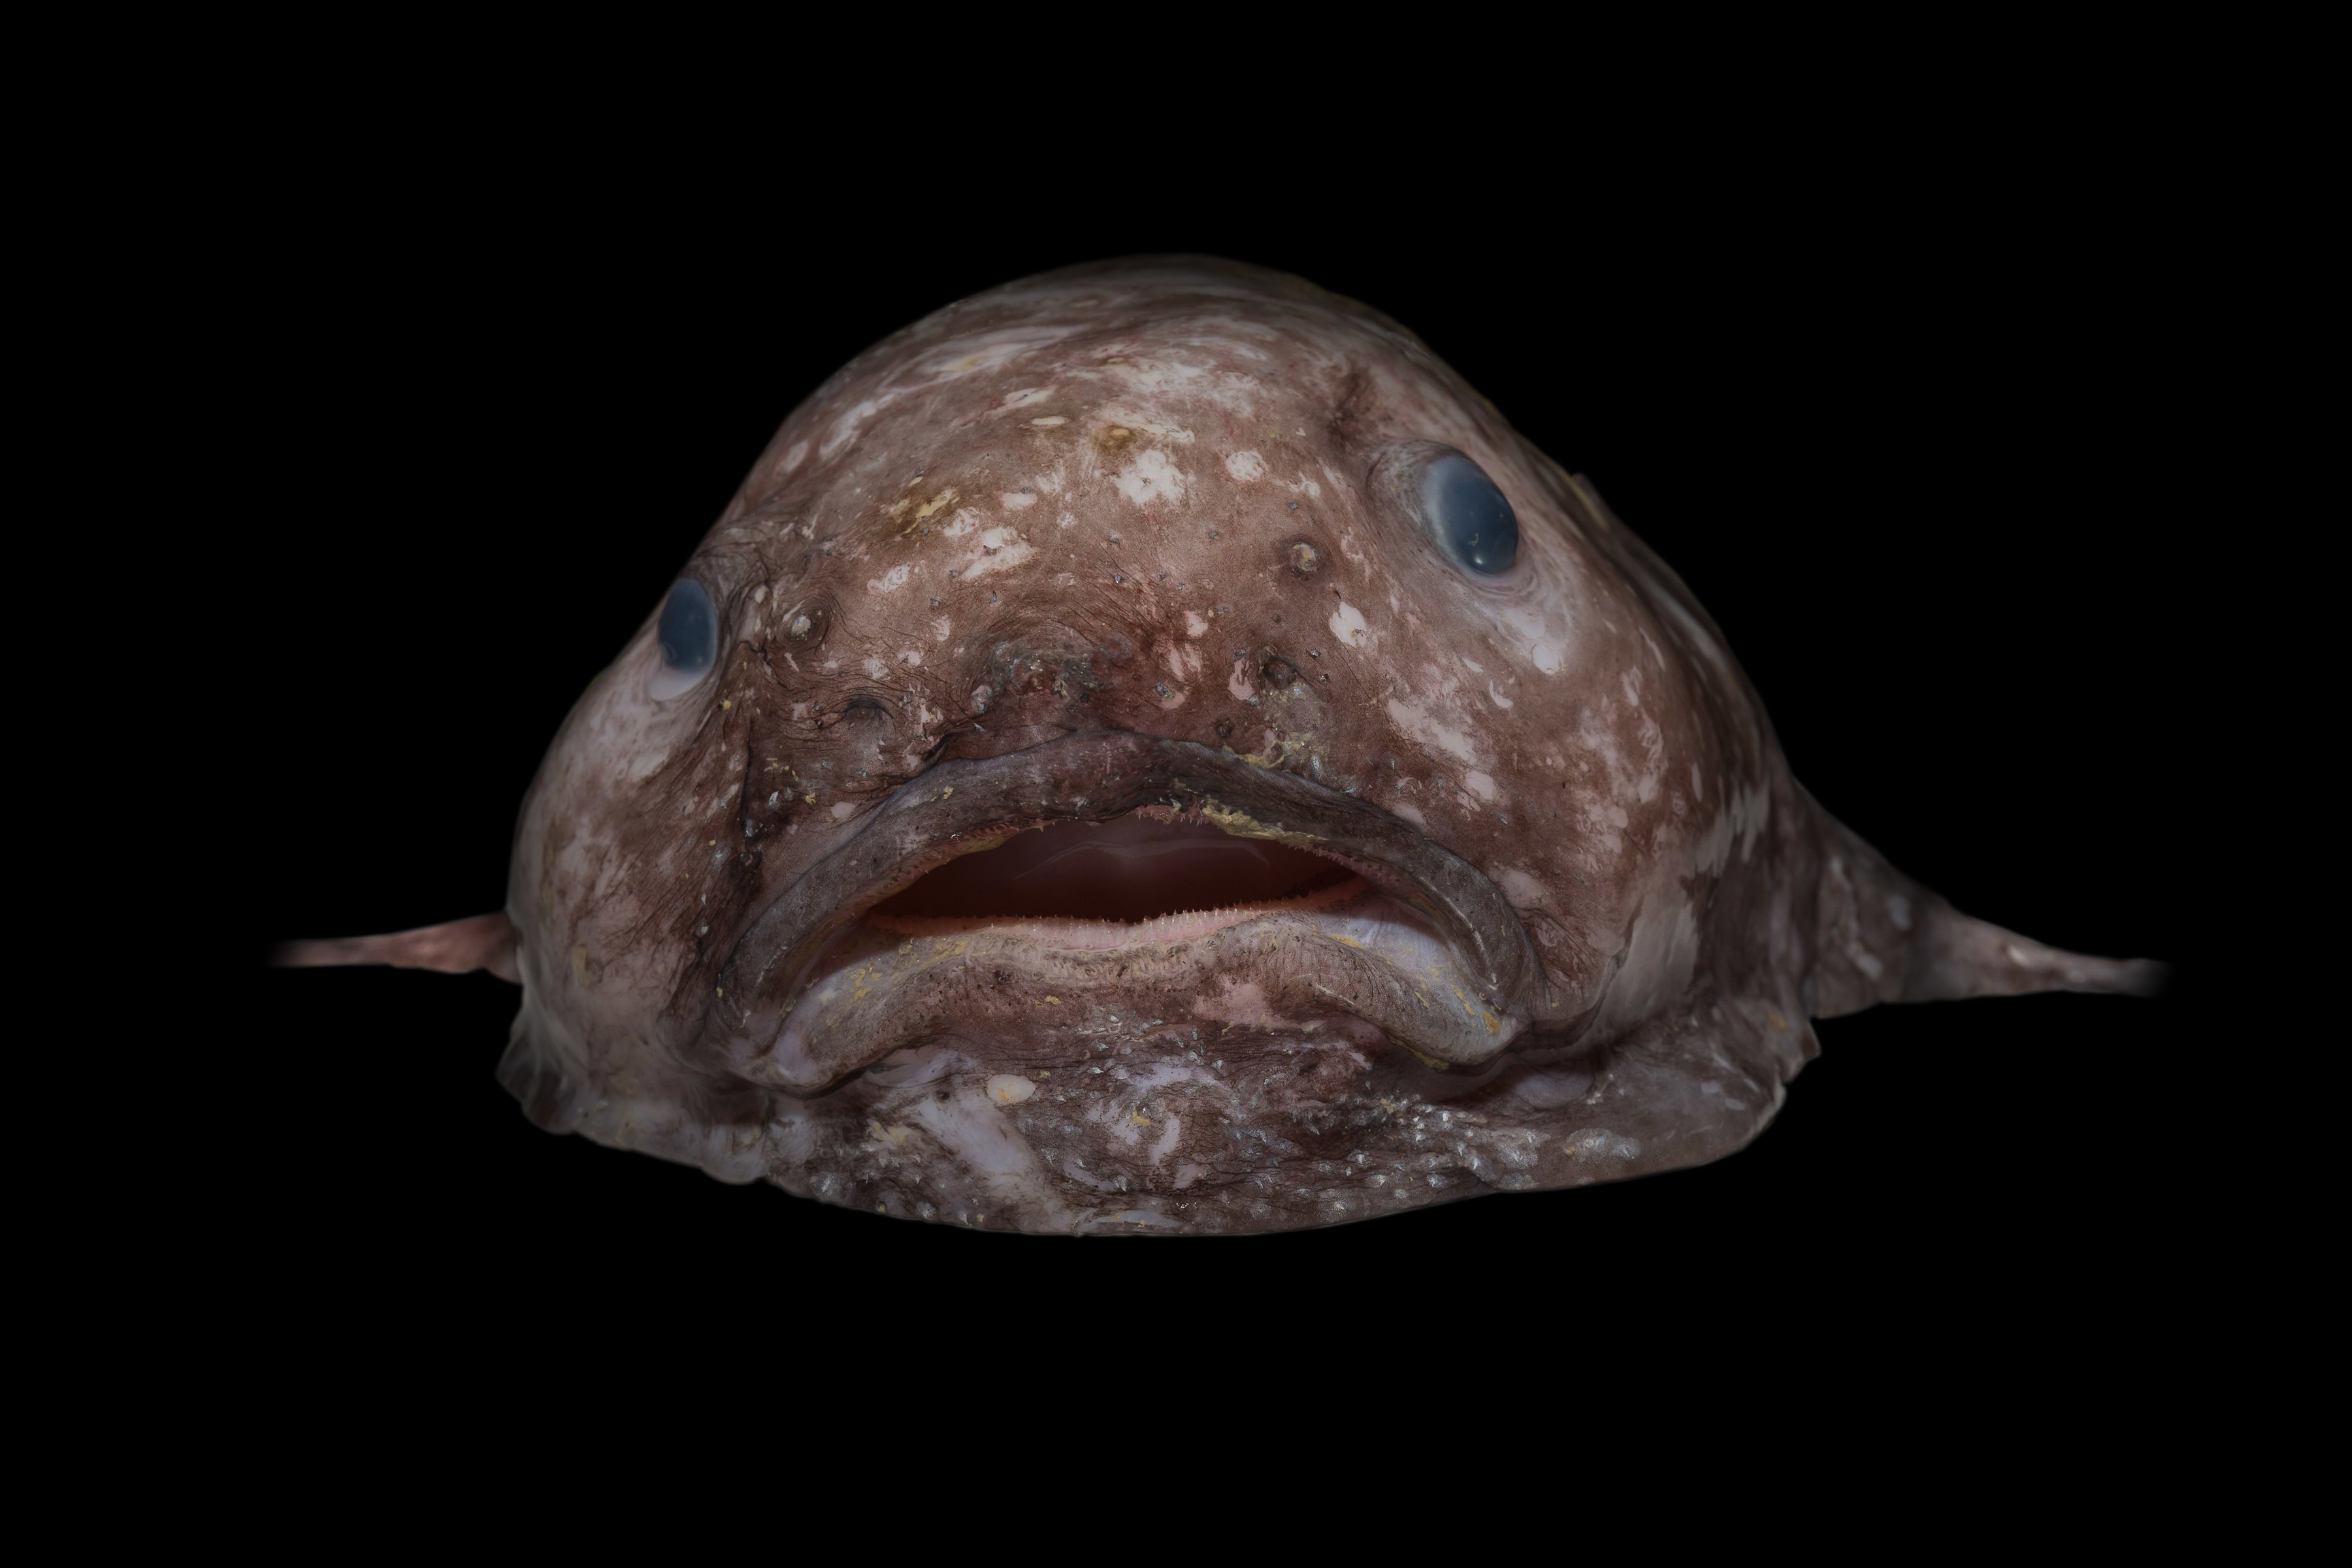 Meet Some of the Insane Creatures Found in the Deep Sea - Creators for Cute Deep Sea Creatures  104xkb